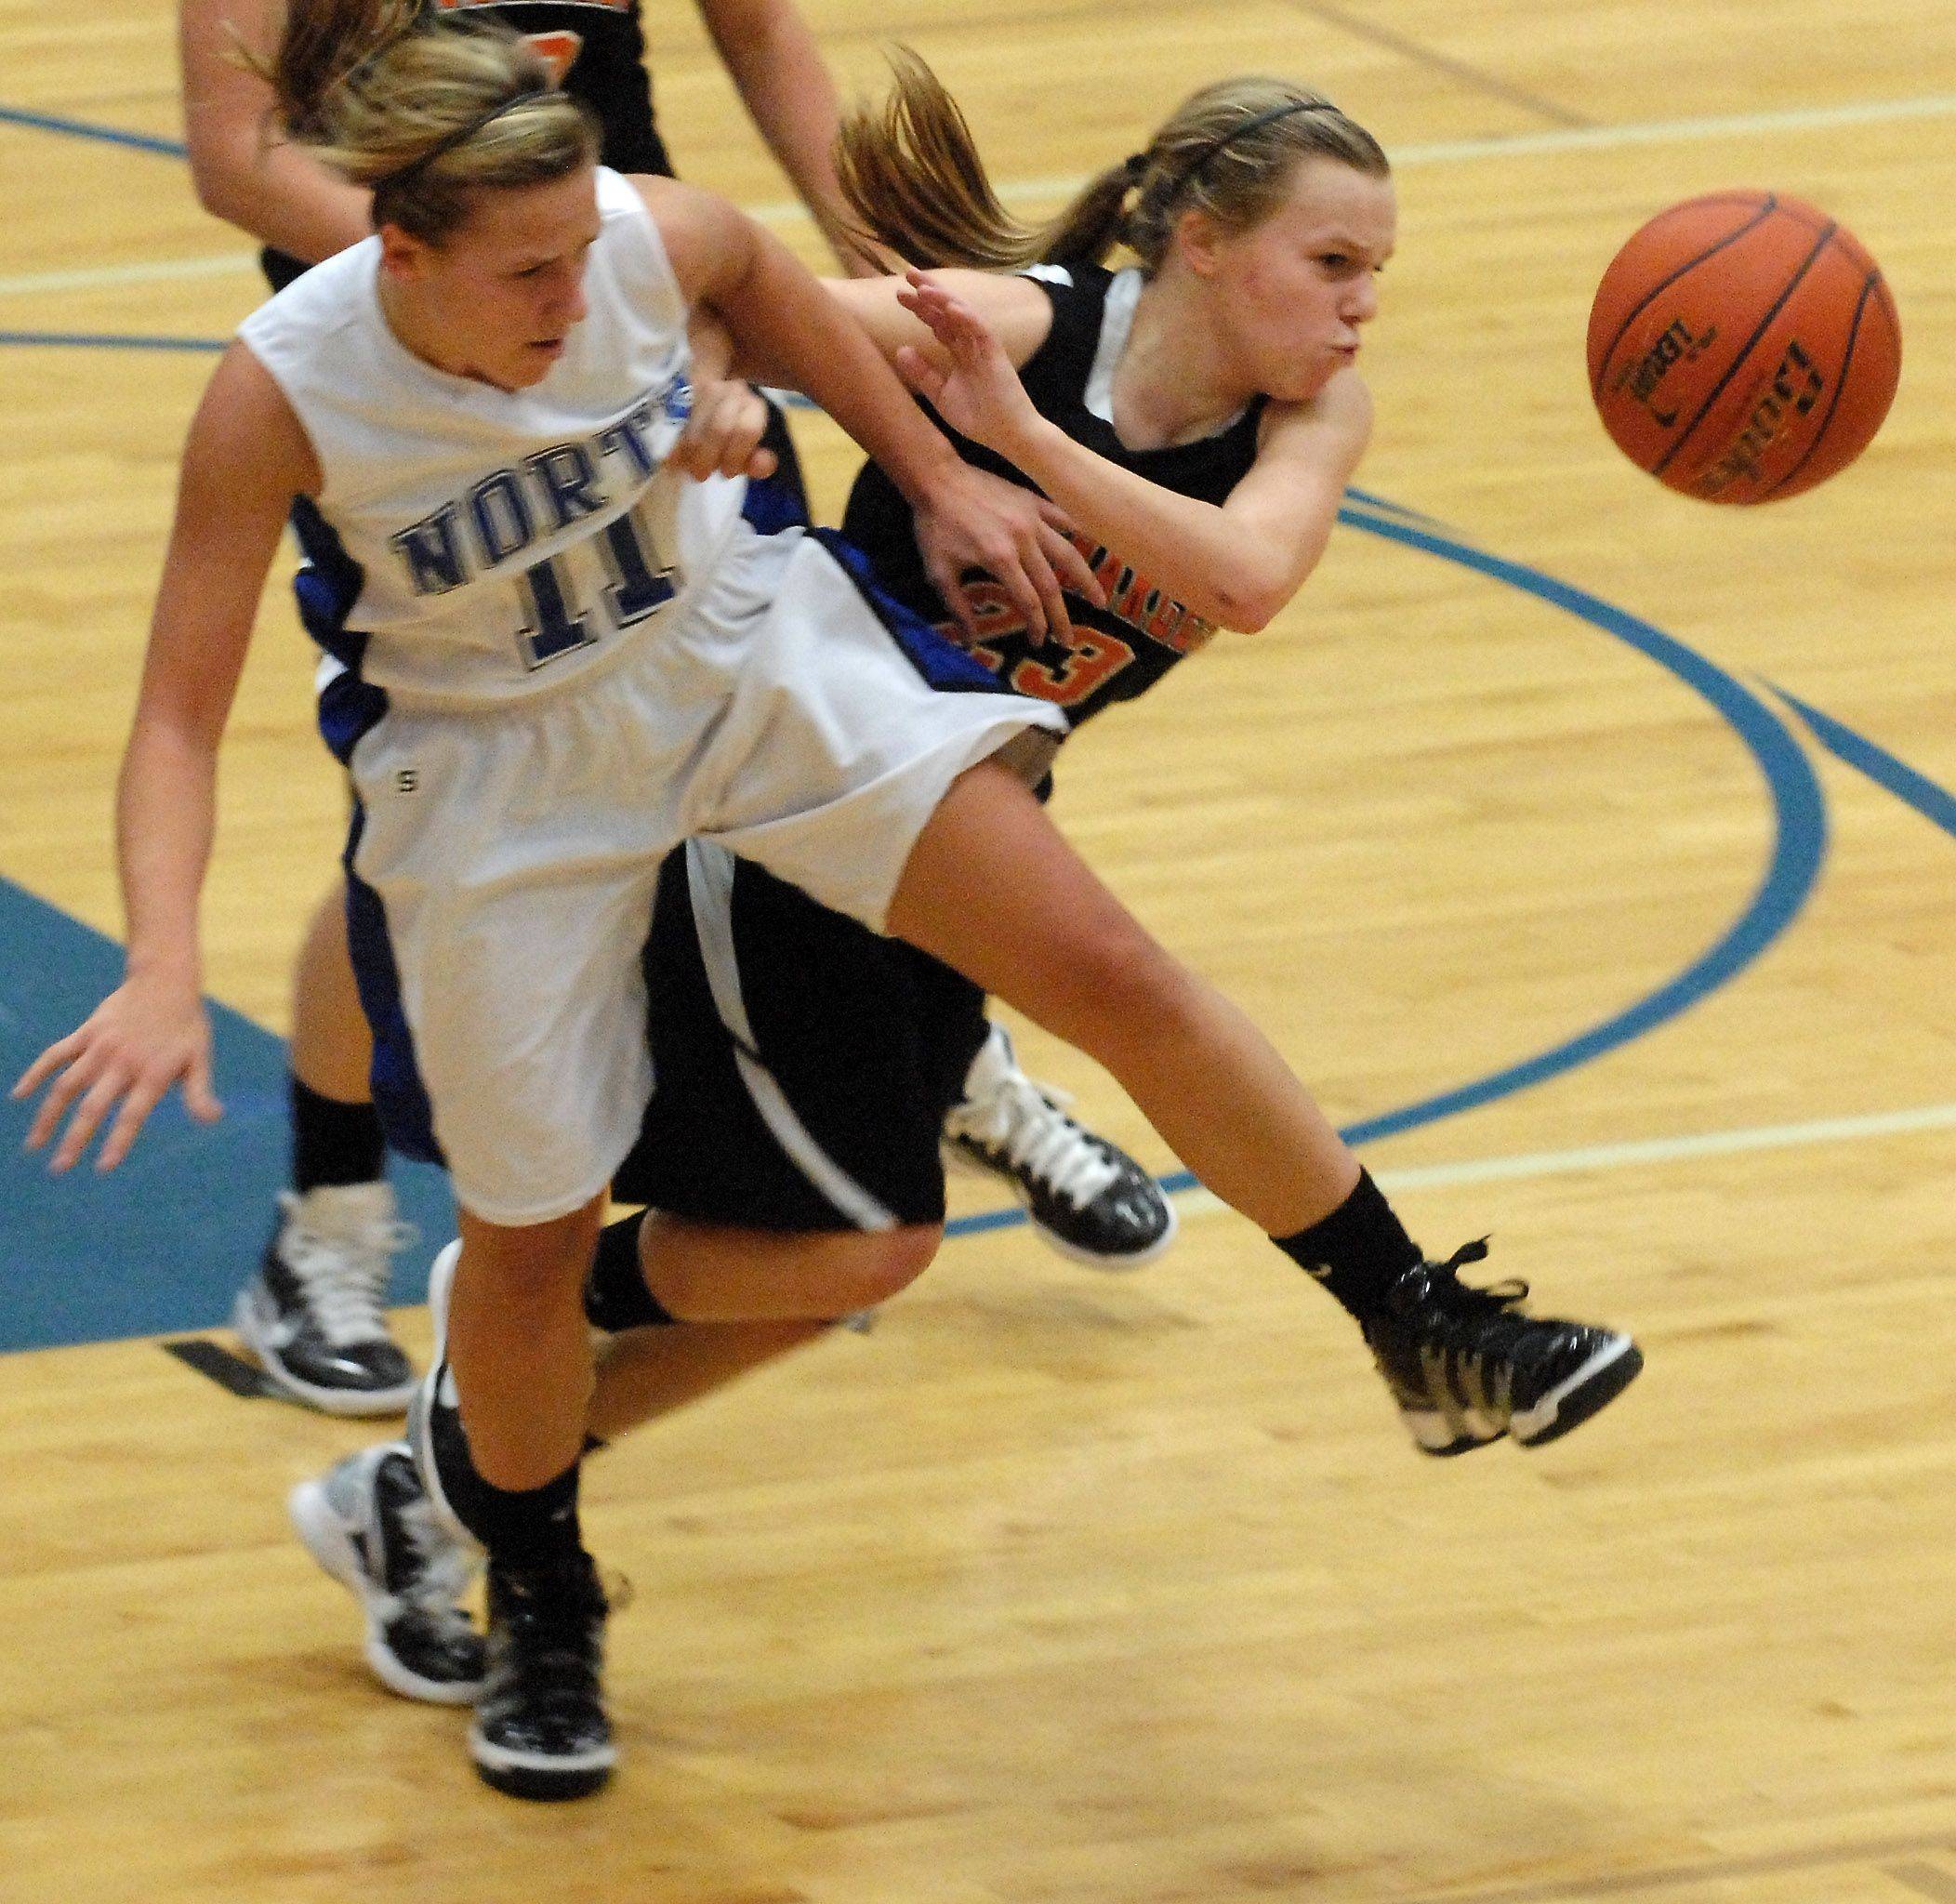 St. Charles North guard Megan Booe and St. Charles East guard Amanda Hilton scramble for a loose ball .